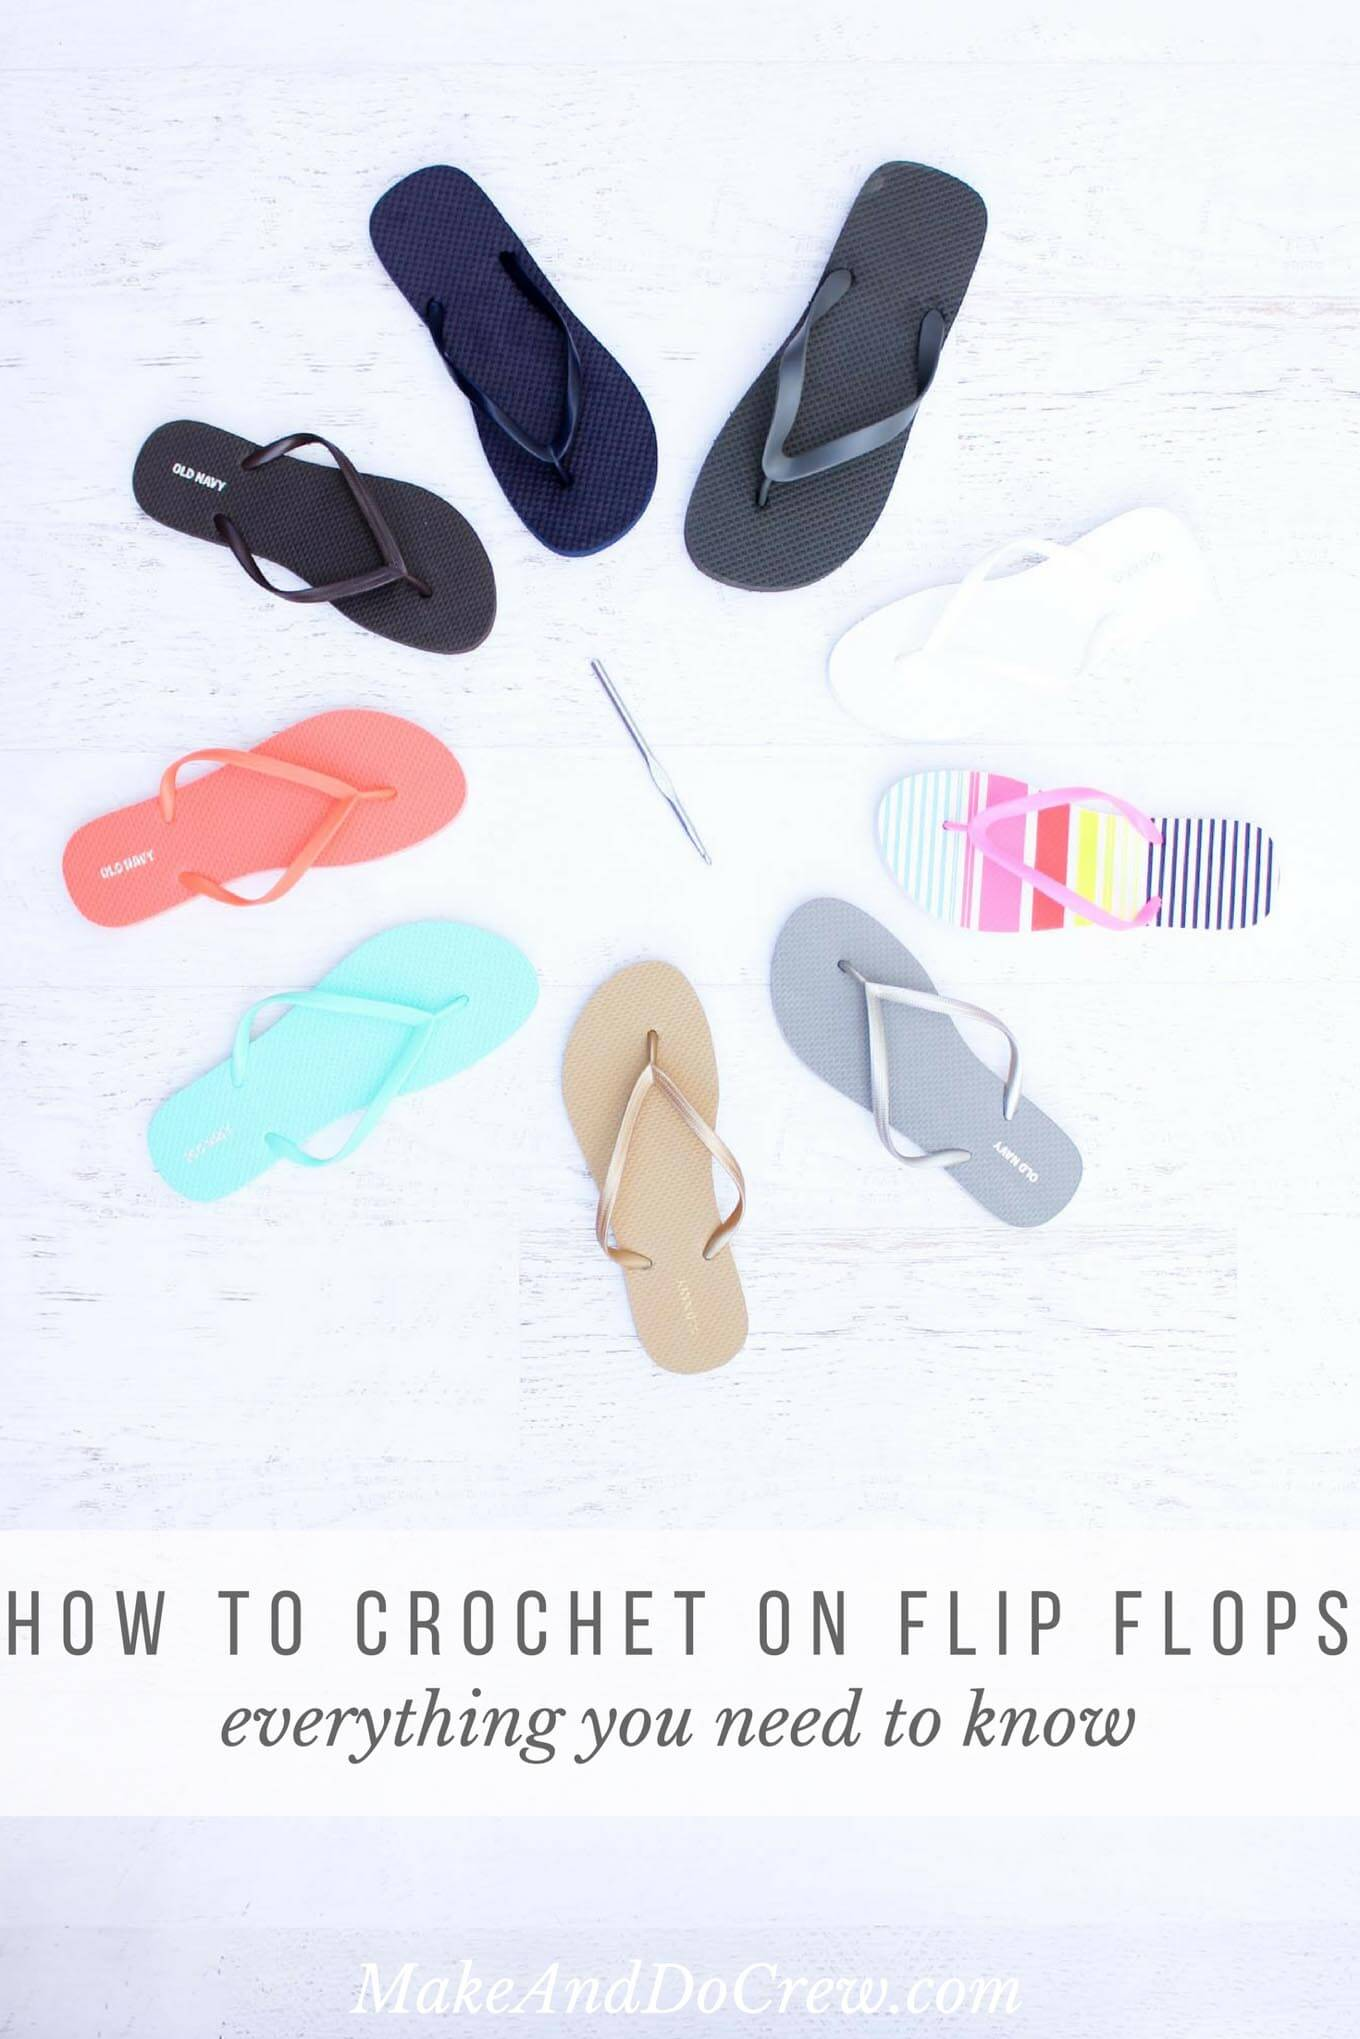 Learn How to Crochet on Flip Flops